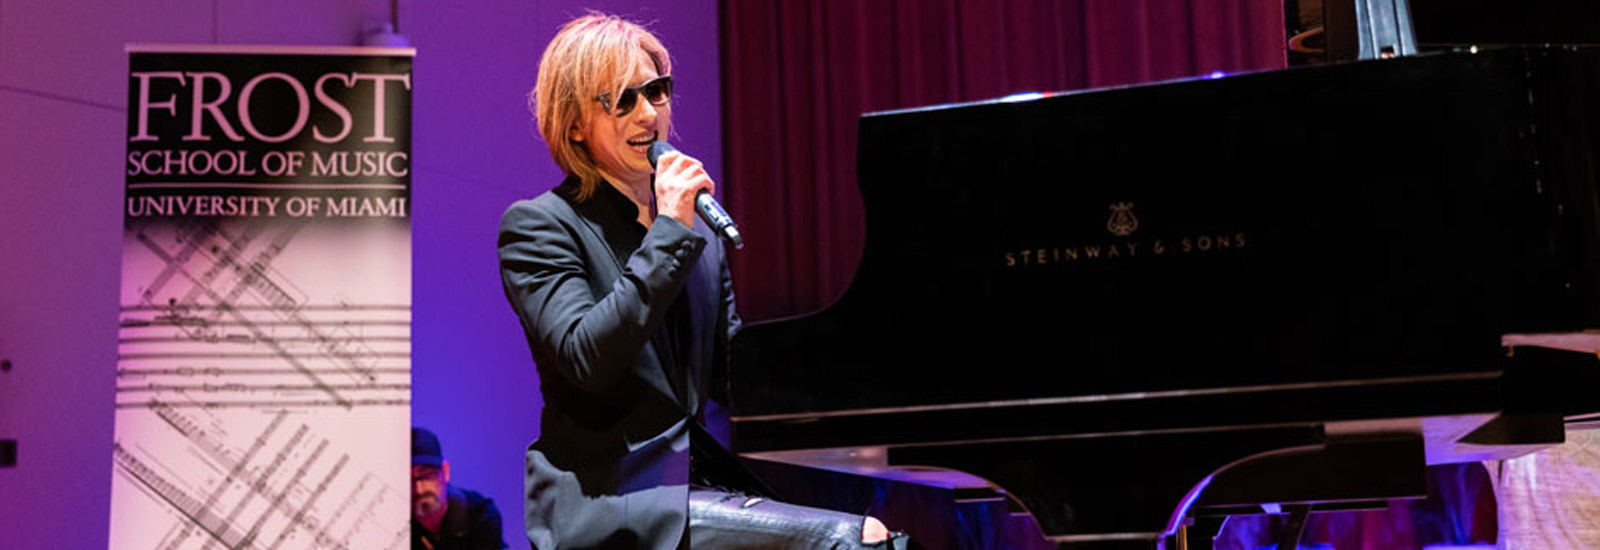 Yoshiki, Frost School of Music, X Japan